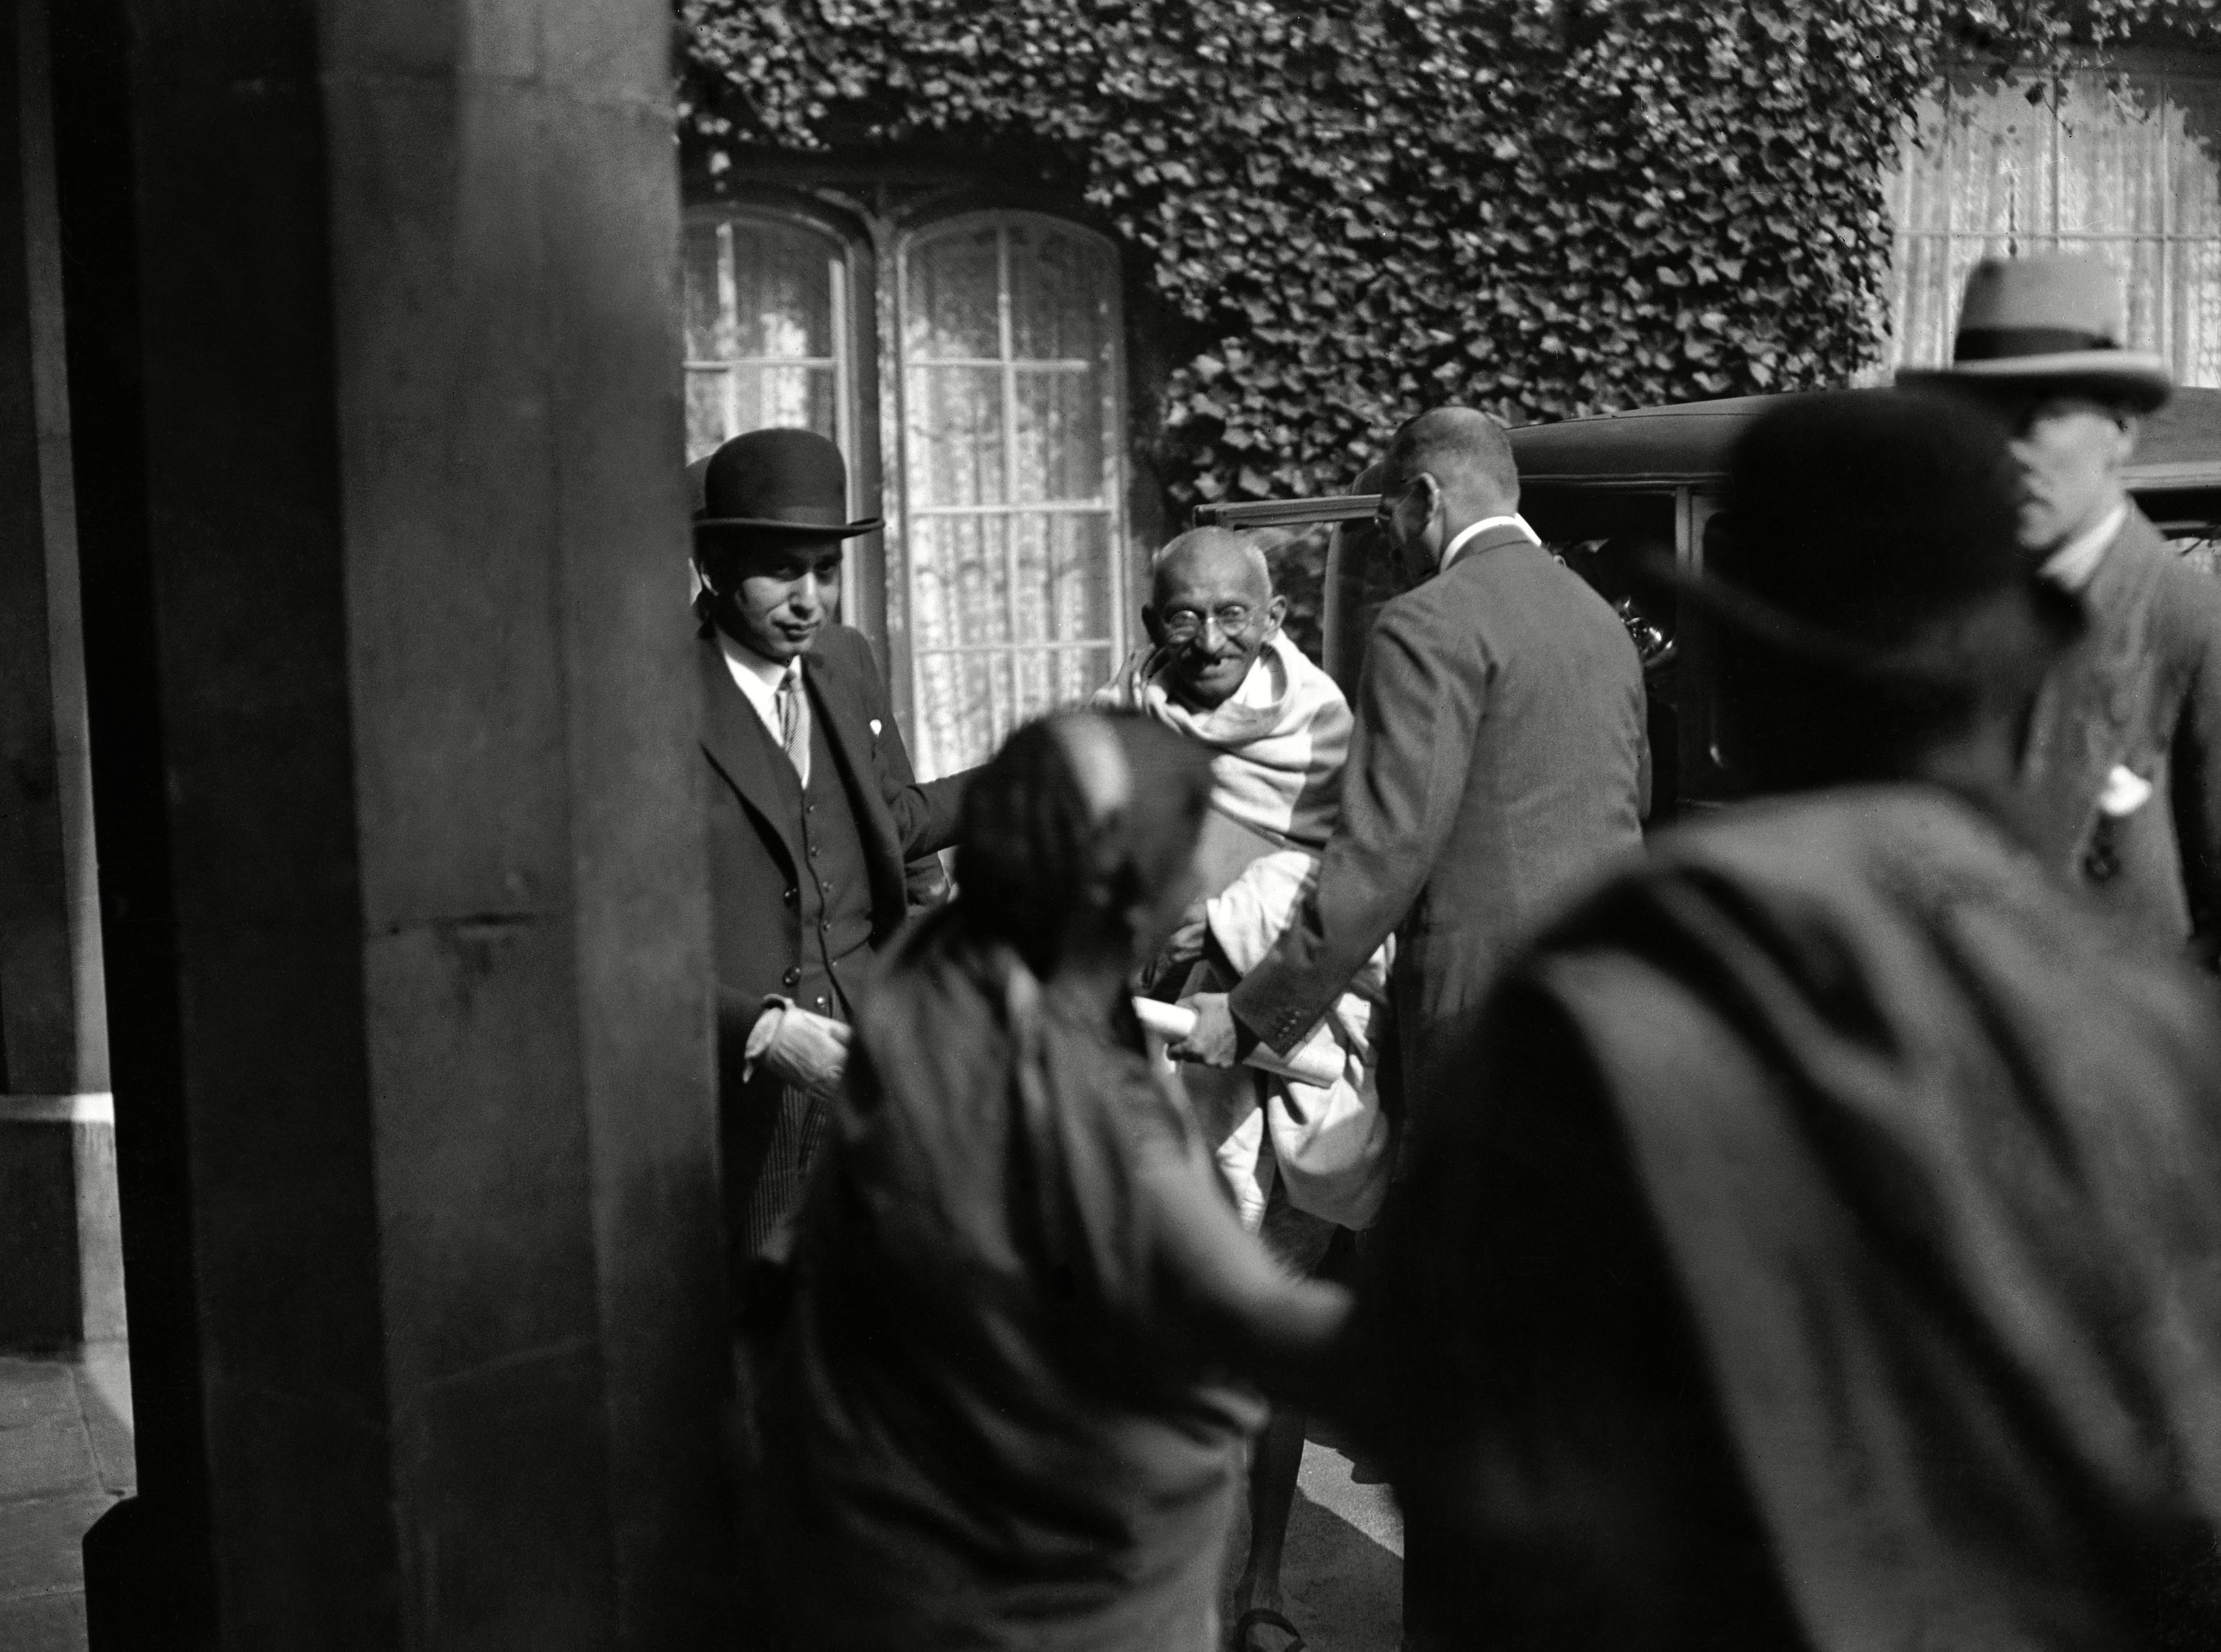 Gandhi leaving his Knightsbridge office in London to attend the India Round Table Conference